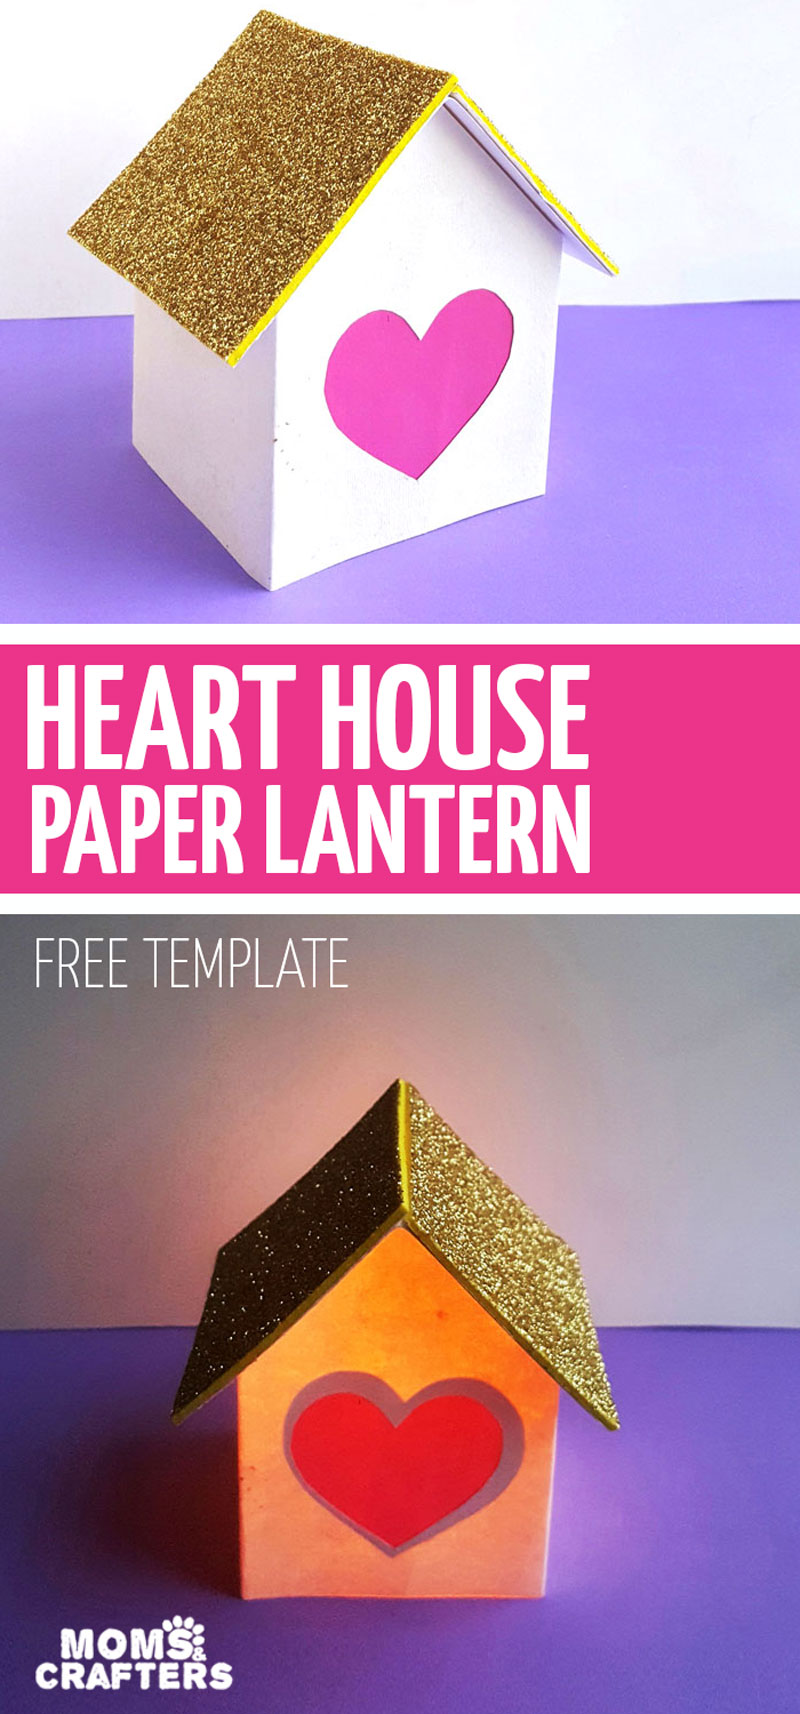 These fun valentine paper lanterns come with a free template for you to enjoy! A fun valentine's day hearts paper craft, this sweet house lantern is fun for kids, teens, and grown-ups